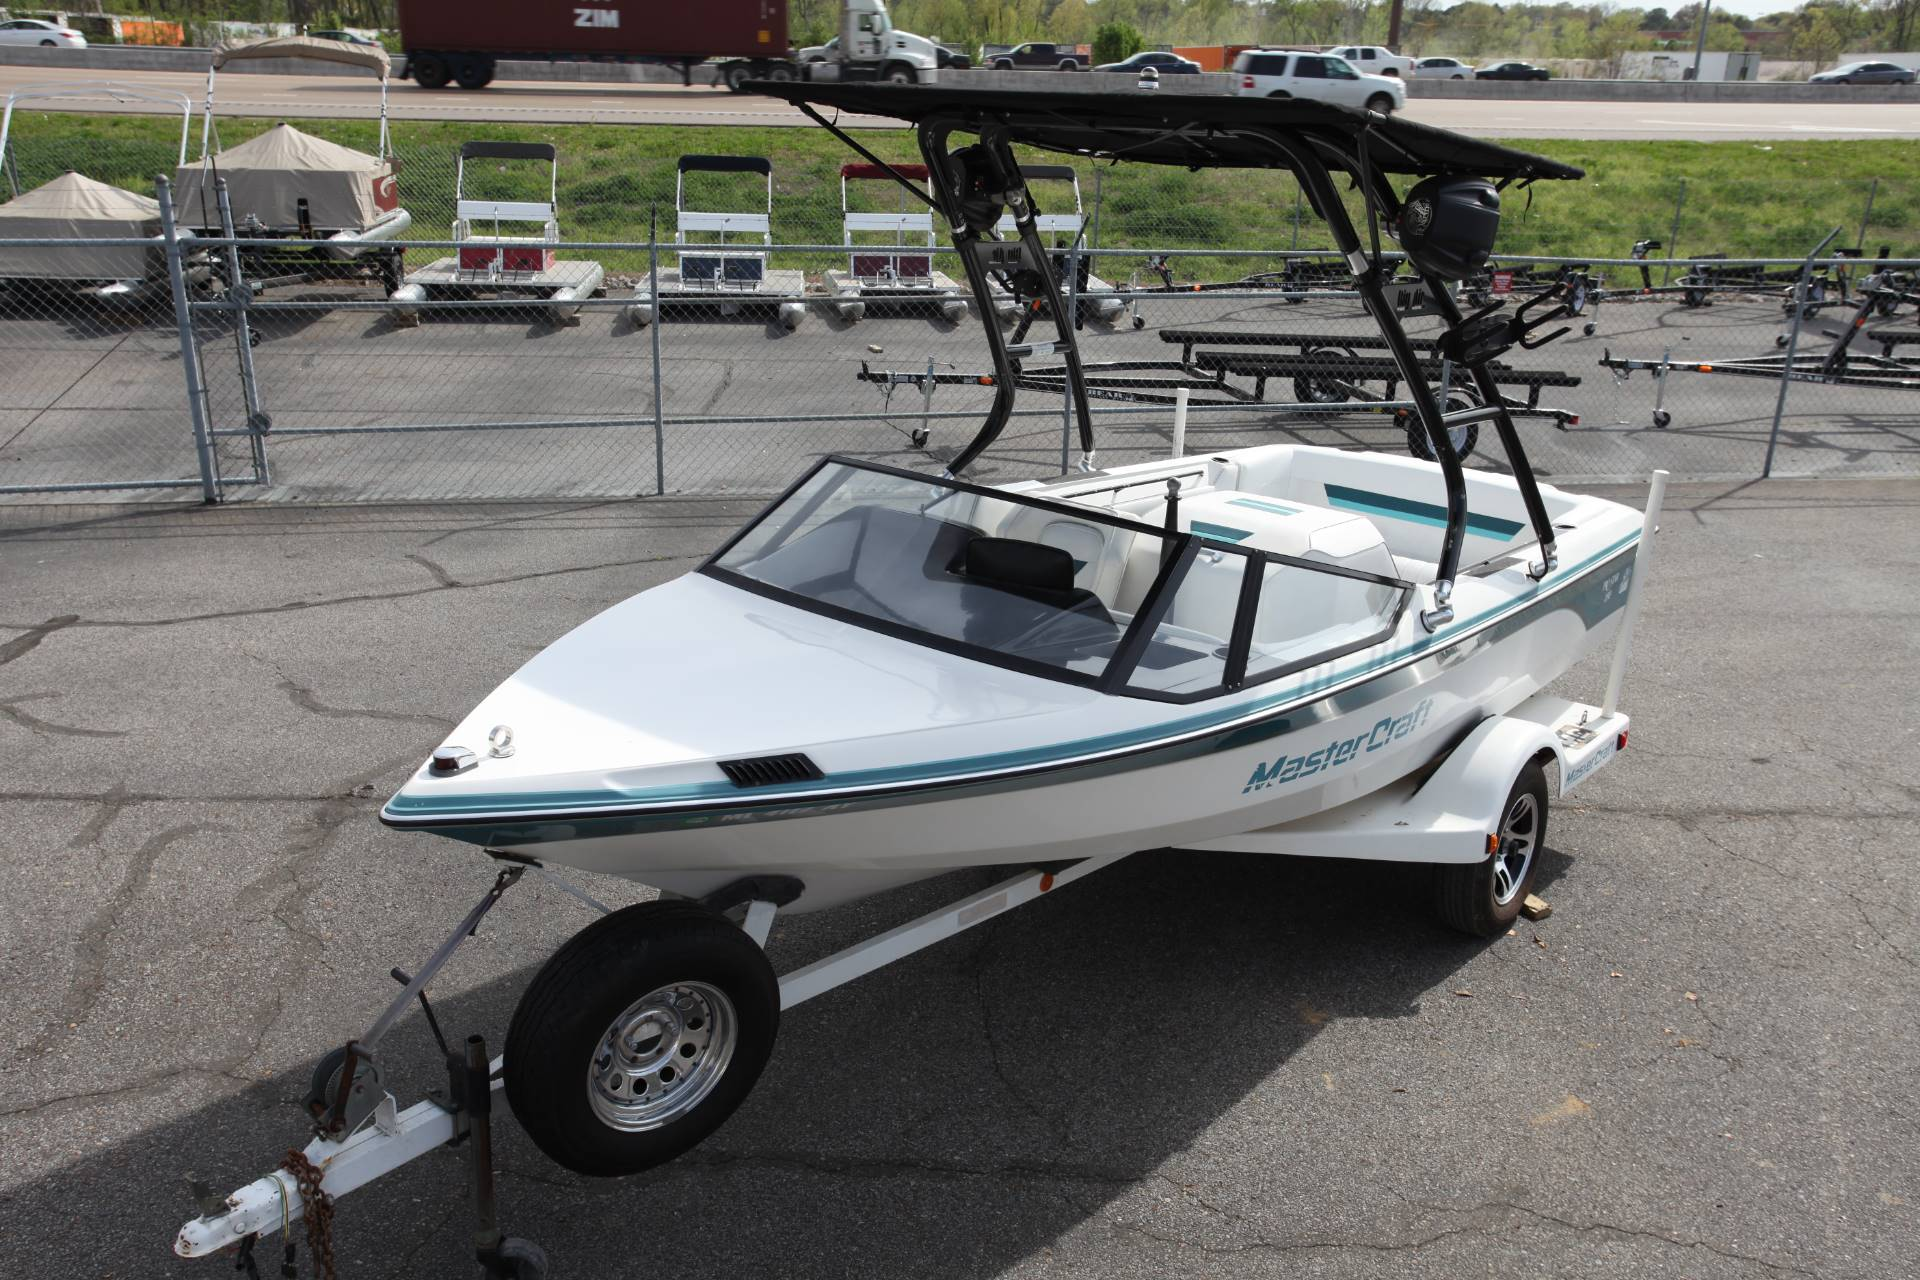 1988 Mastercraft PROSTAR 190 in Memphis, Tennessee - Photo 4